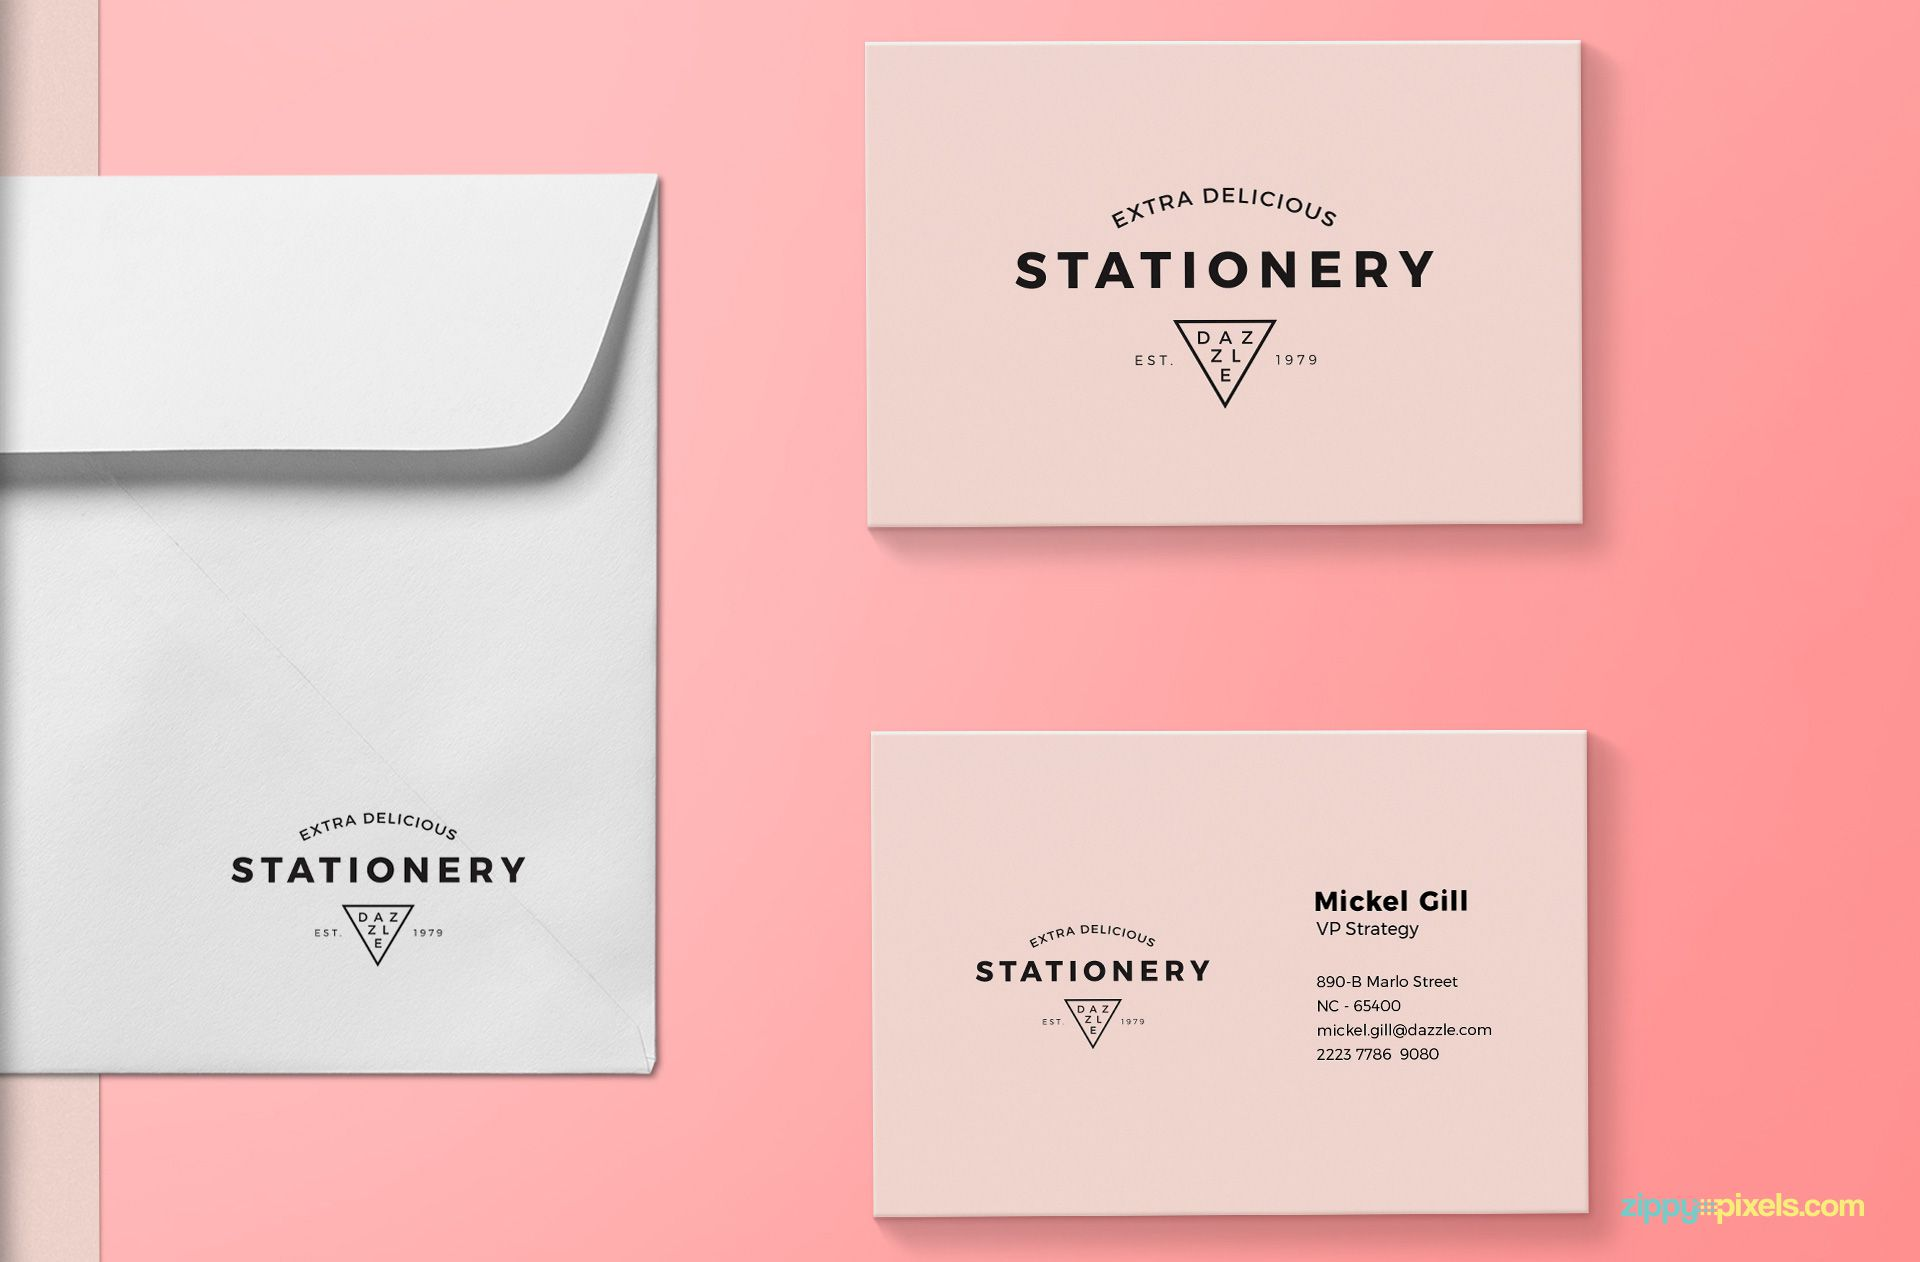 Two business cards mockup.